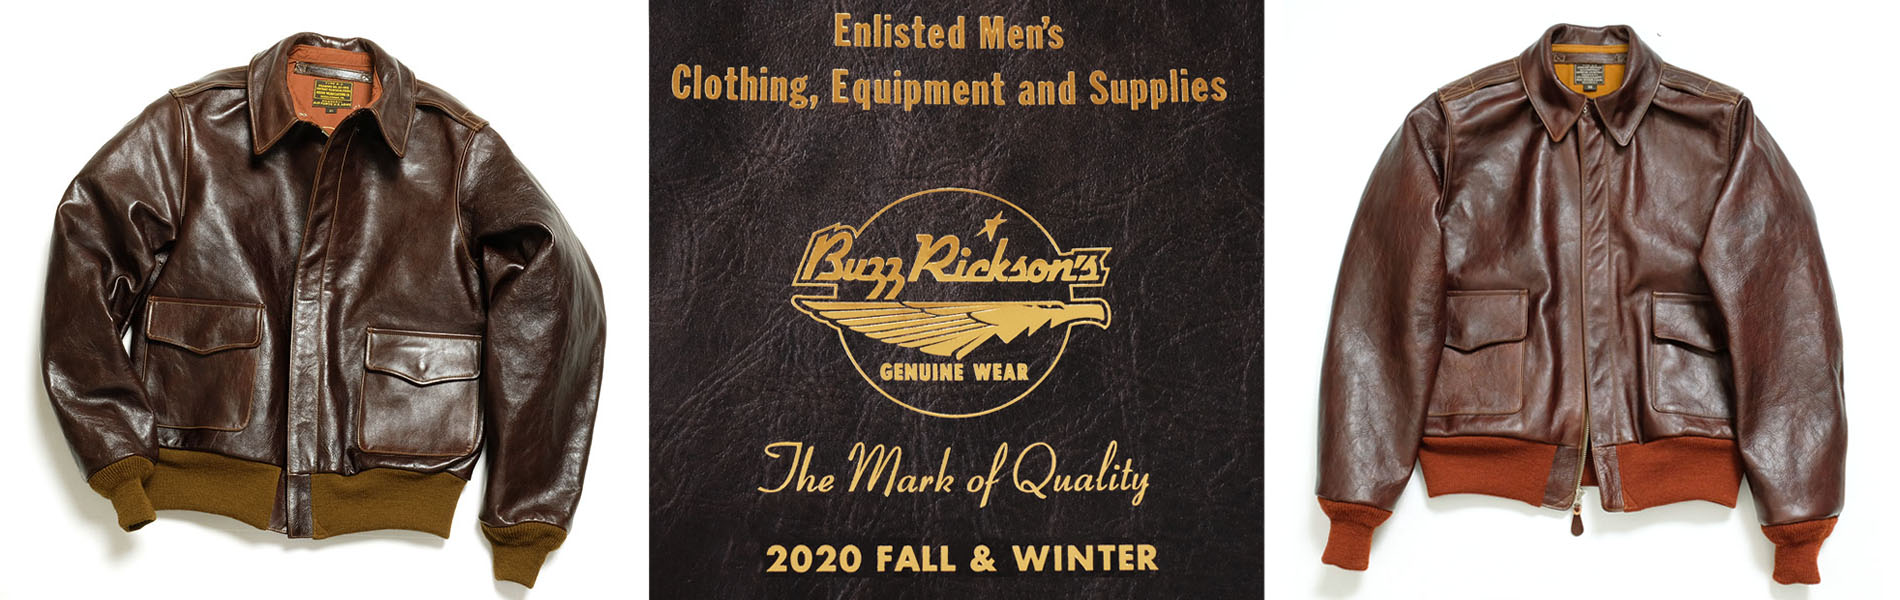 Buzz RIckson's 2020Fall & Winter